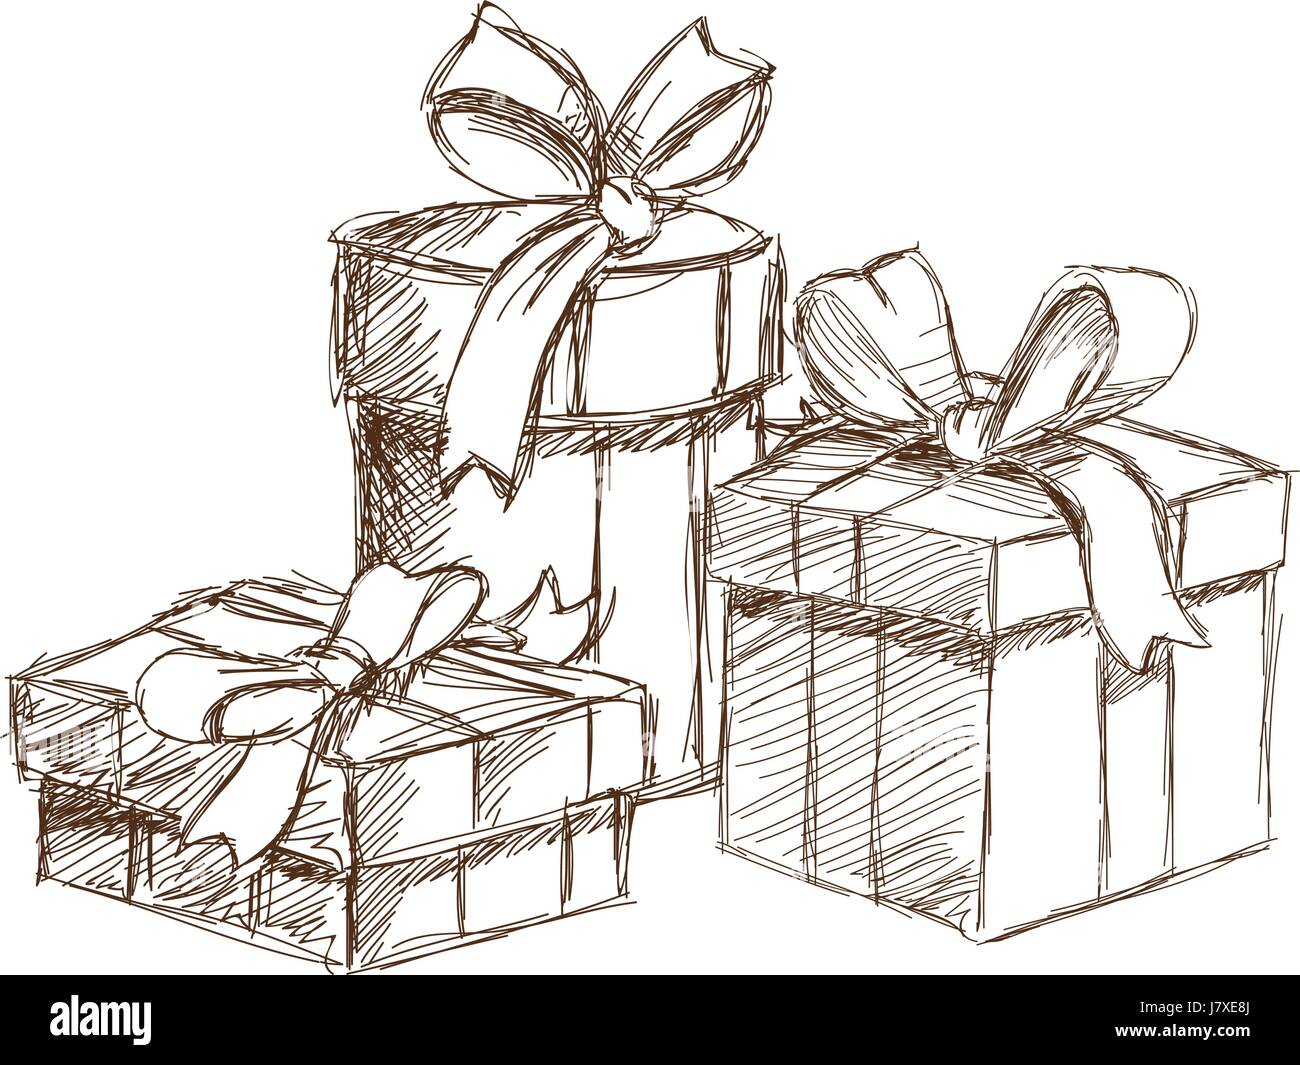 sketch christmas gift boxes packaging. vintage engraved